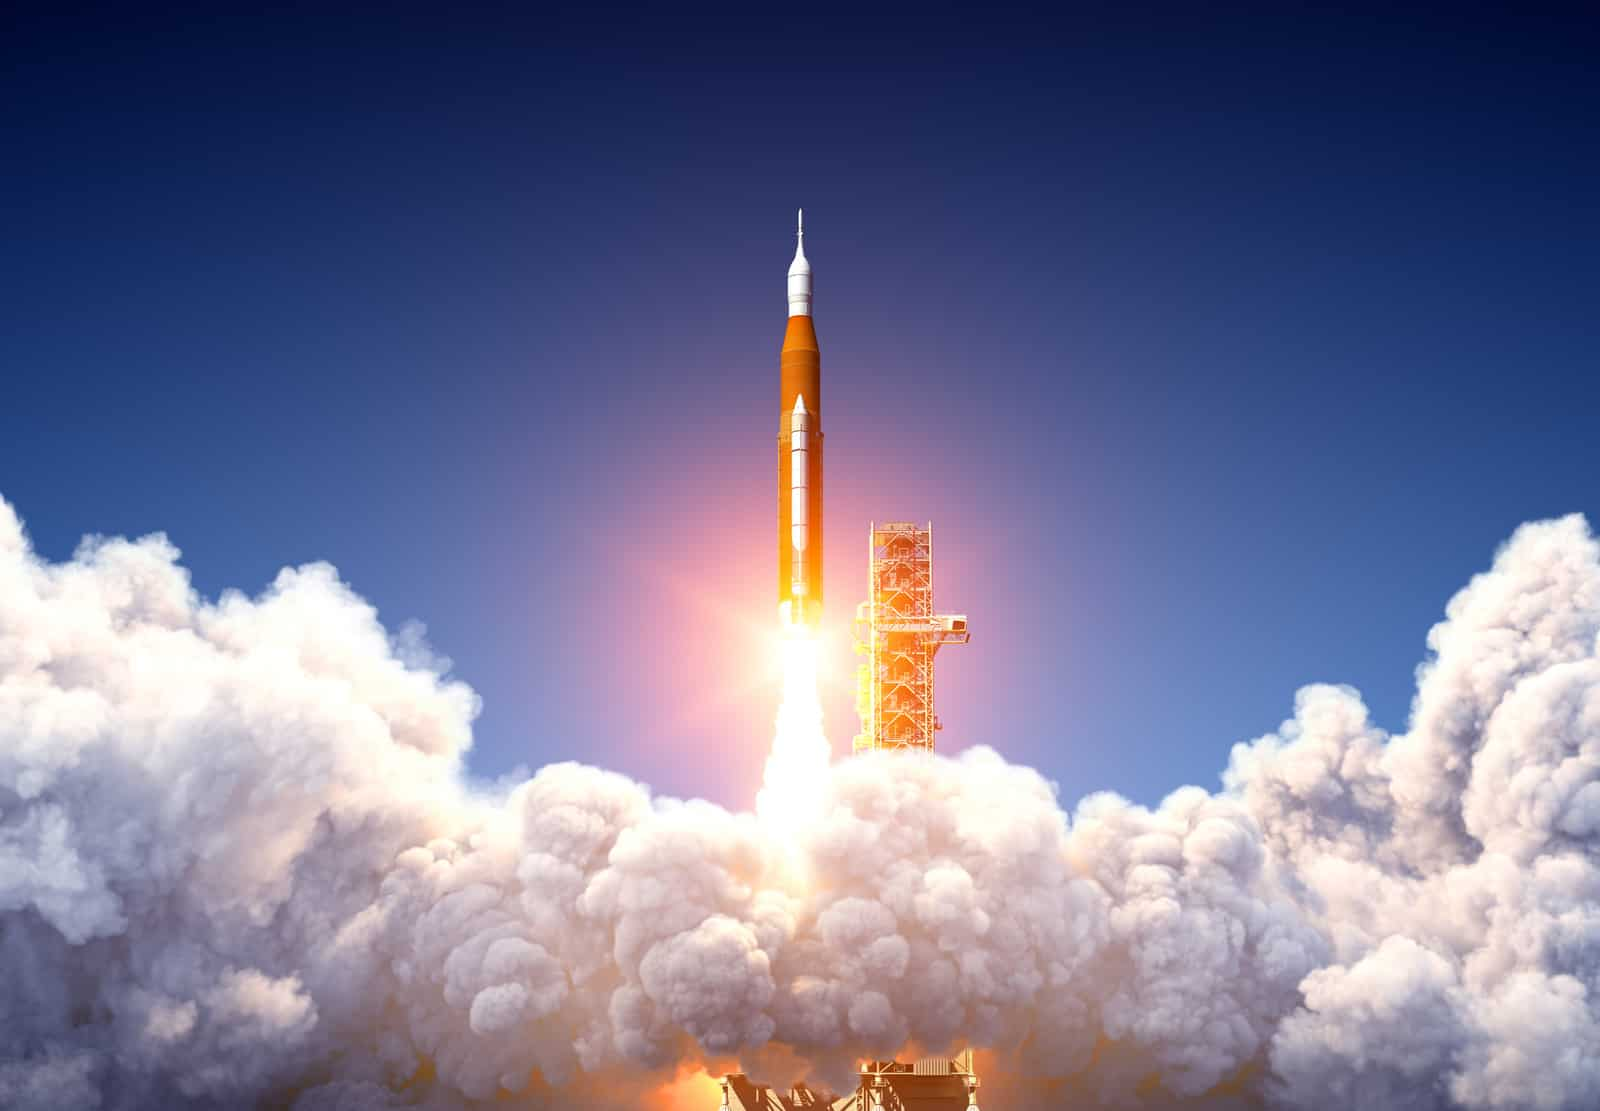 Big Heavy Rocket Space Launch System Launch